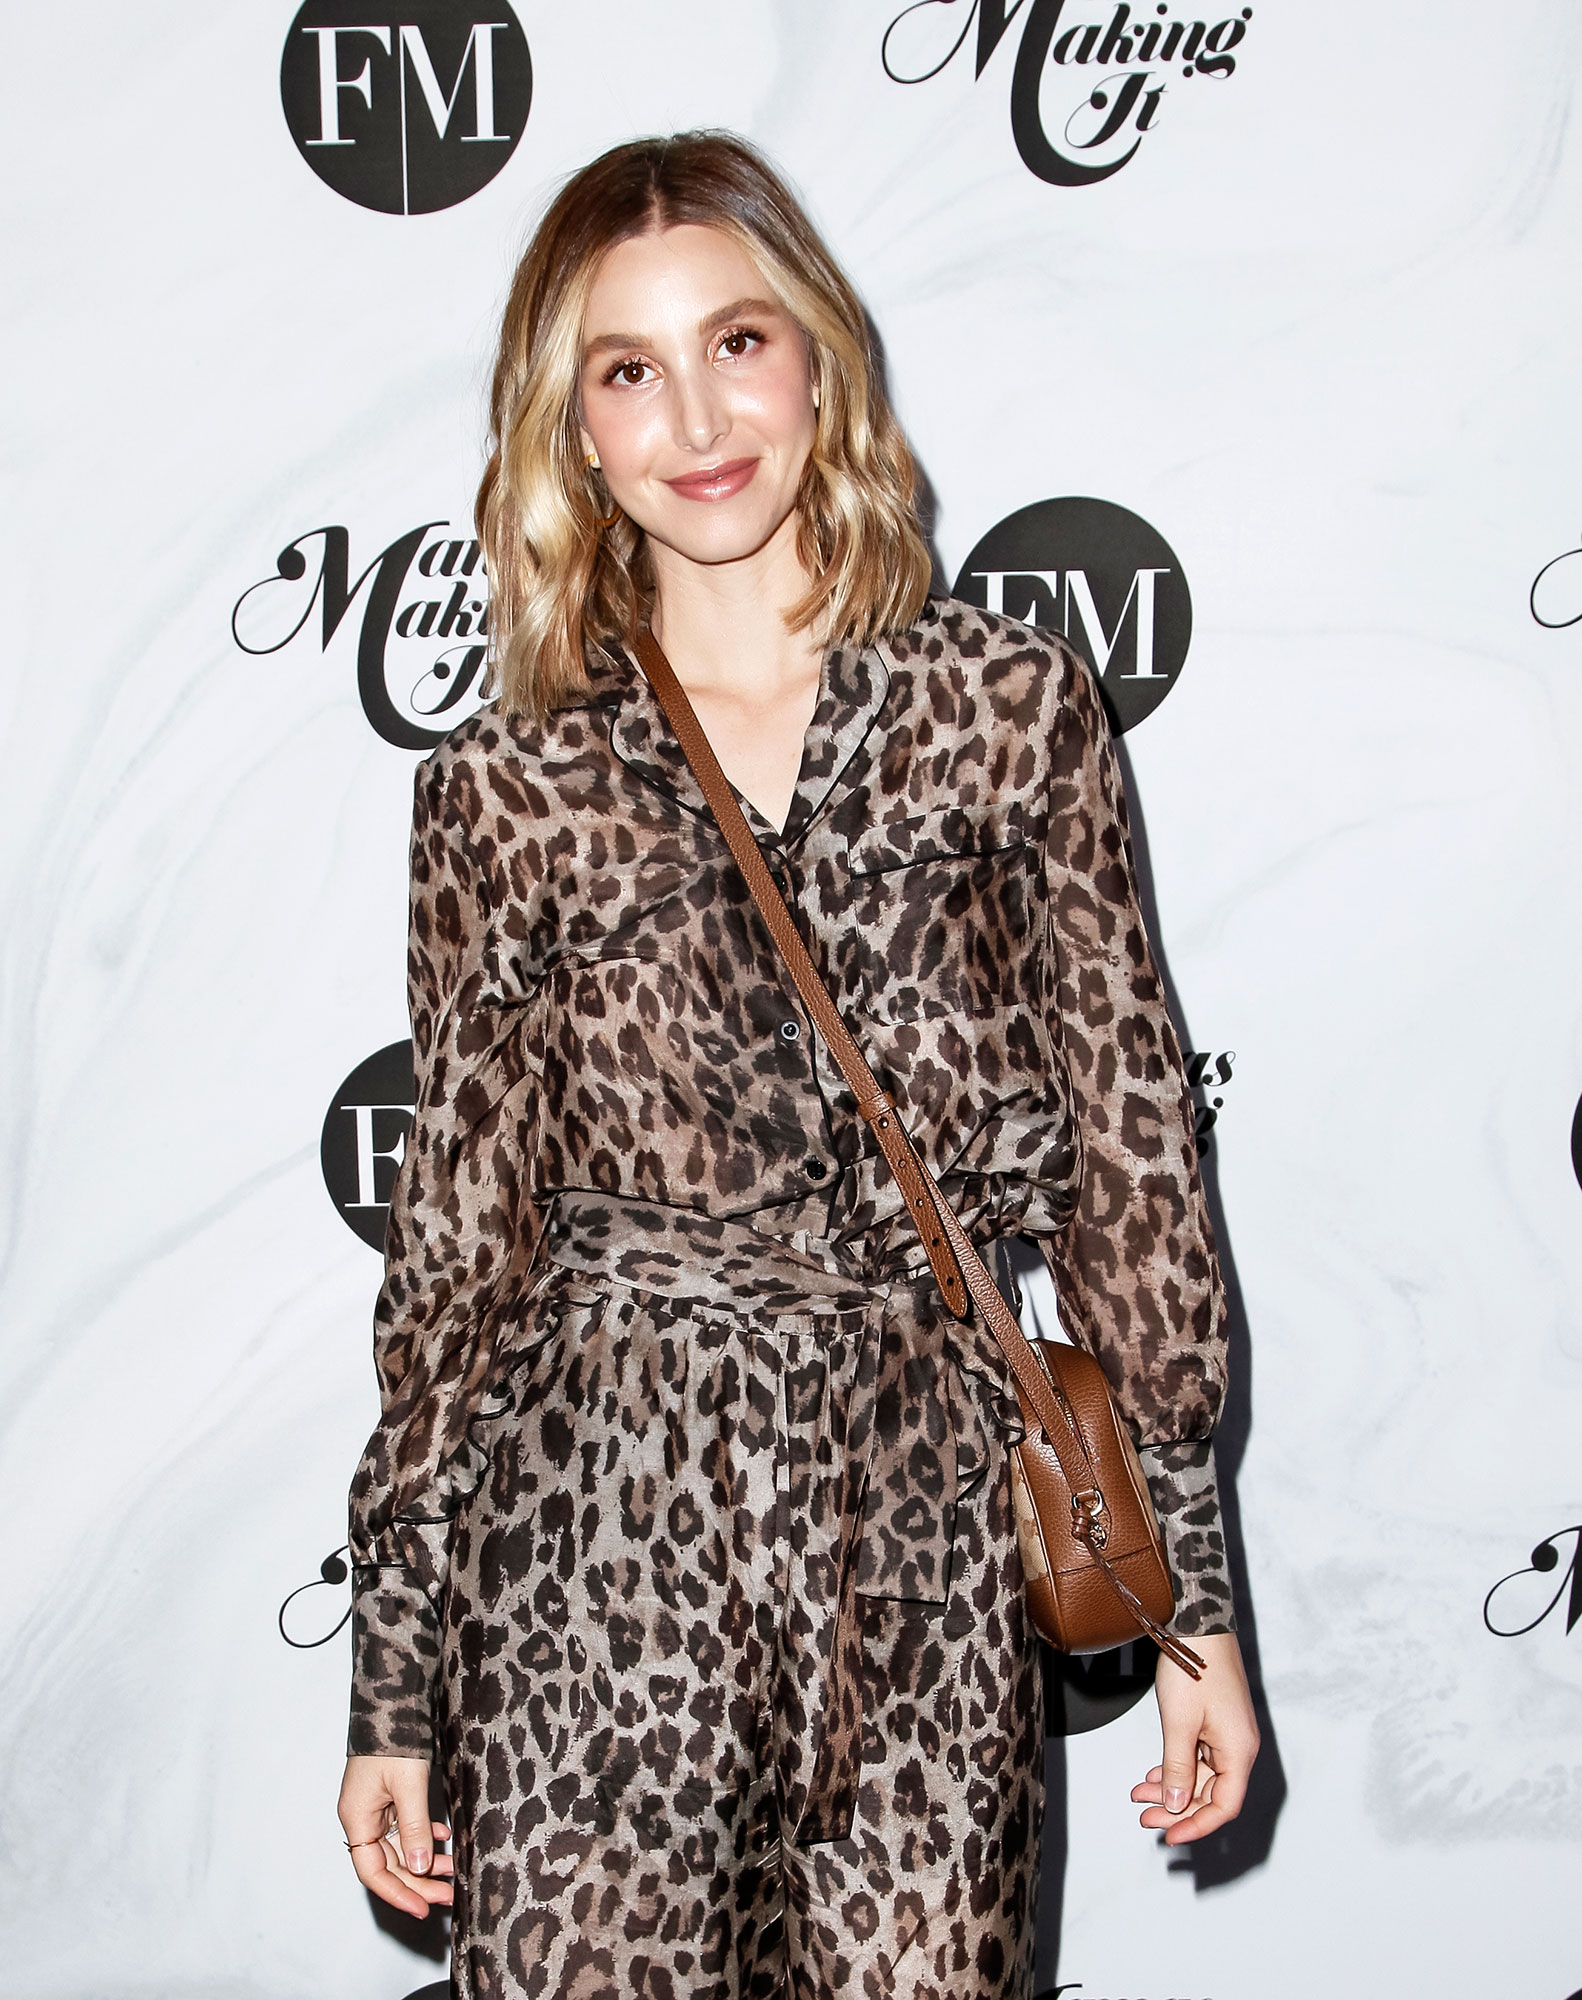 whitney port the hills new beginnings - While she wasn't in attendance, a source tells Us Weekly that Whitney Port , who starred on The Hills and landed her own spinoff, The City , afterward, is also set to appear.